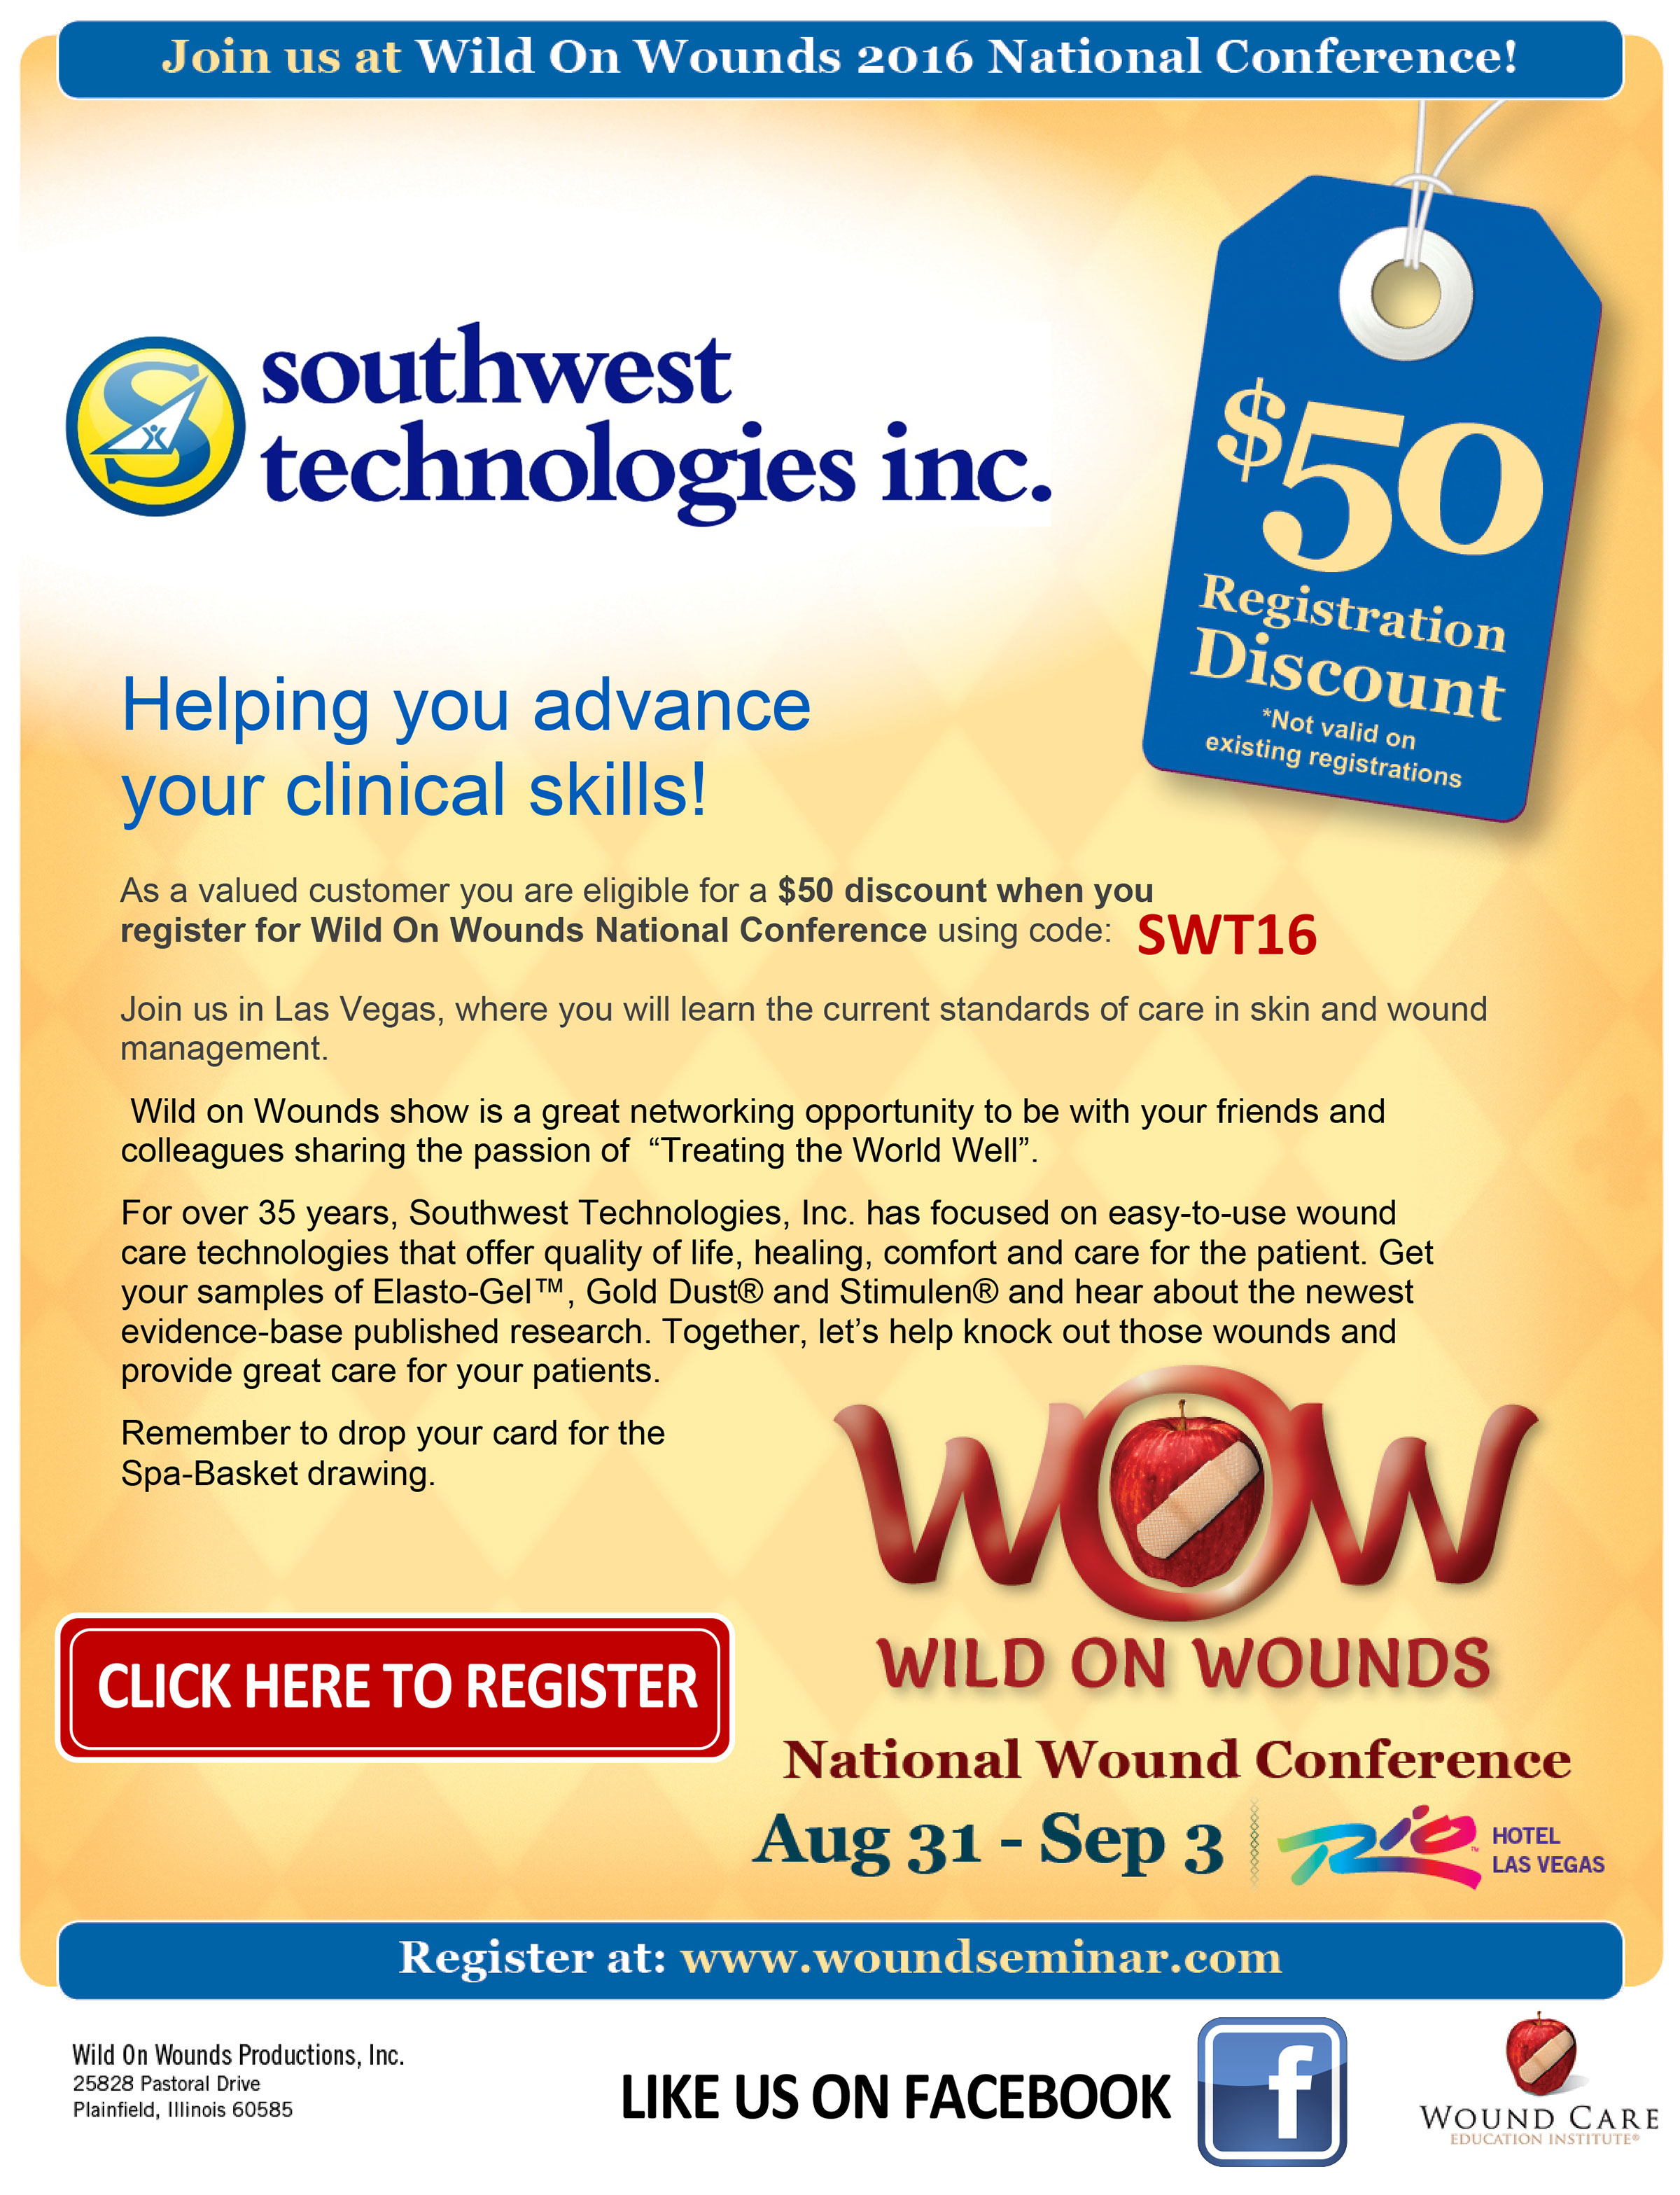 Wild On Wounds 2016 National Conference